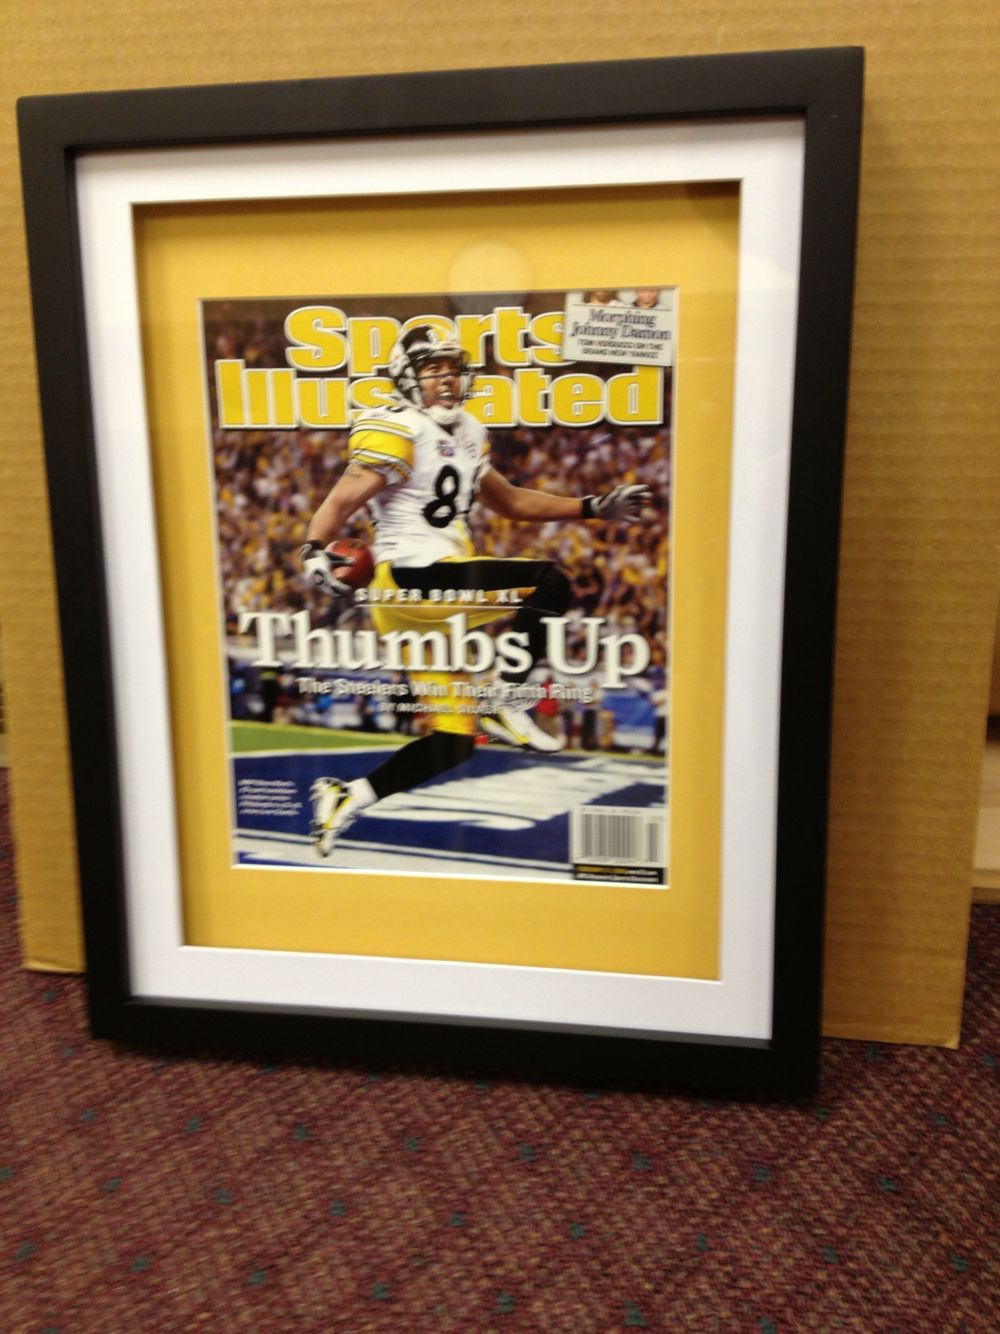 A memorable Sports Illustrated magazine framed for a